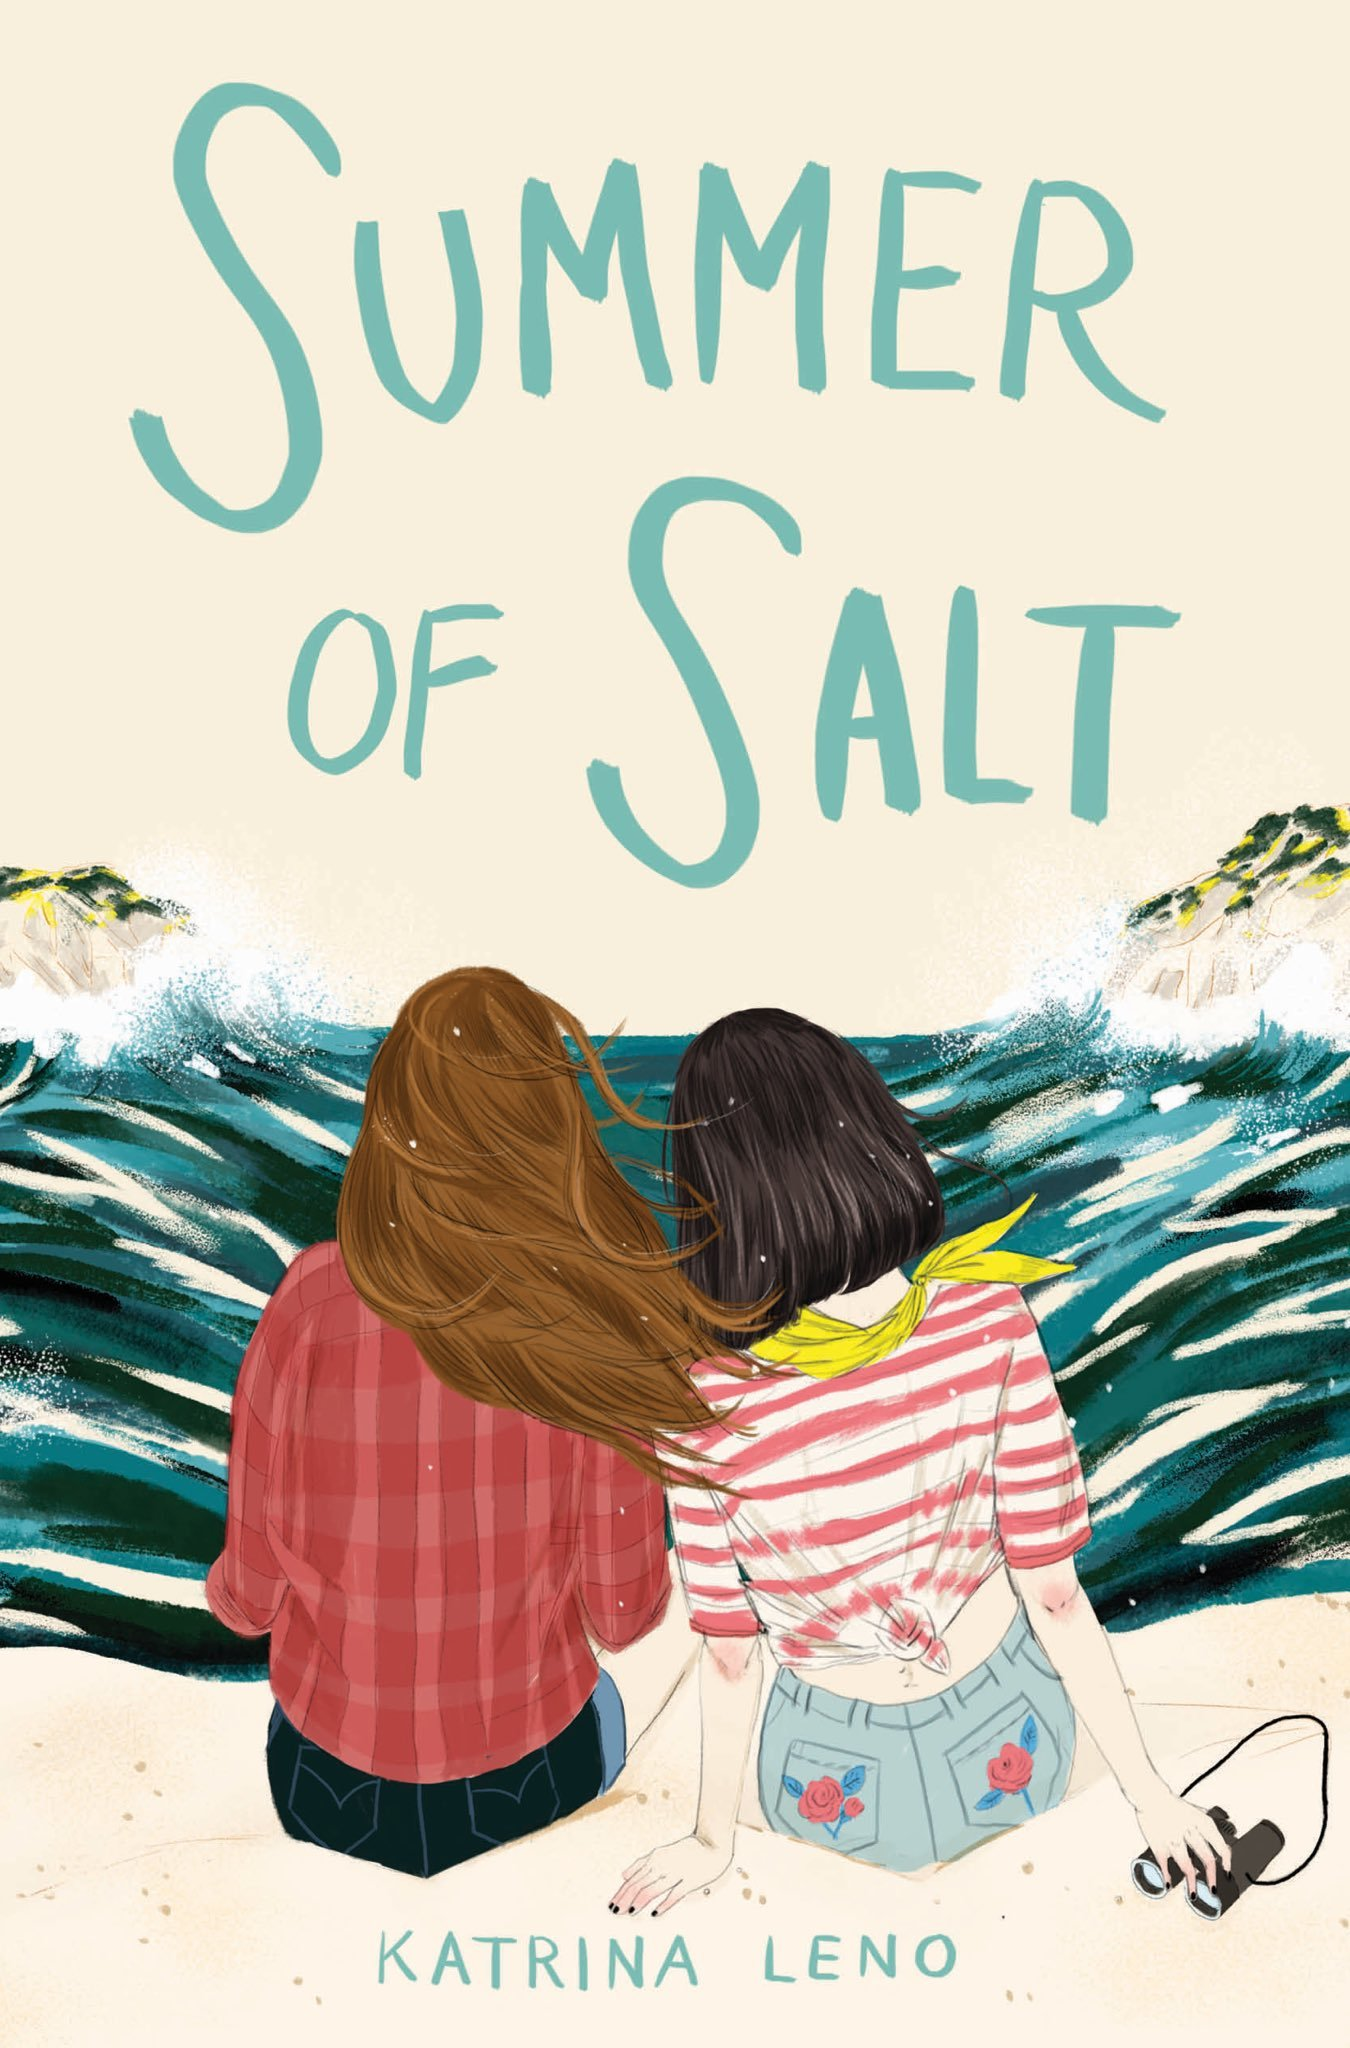 Summer of Salt - Katrina Leno